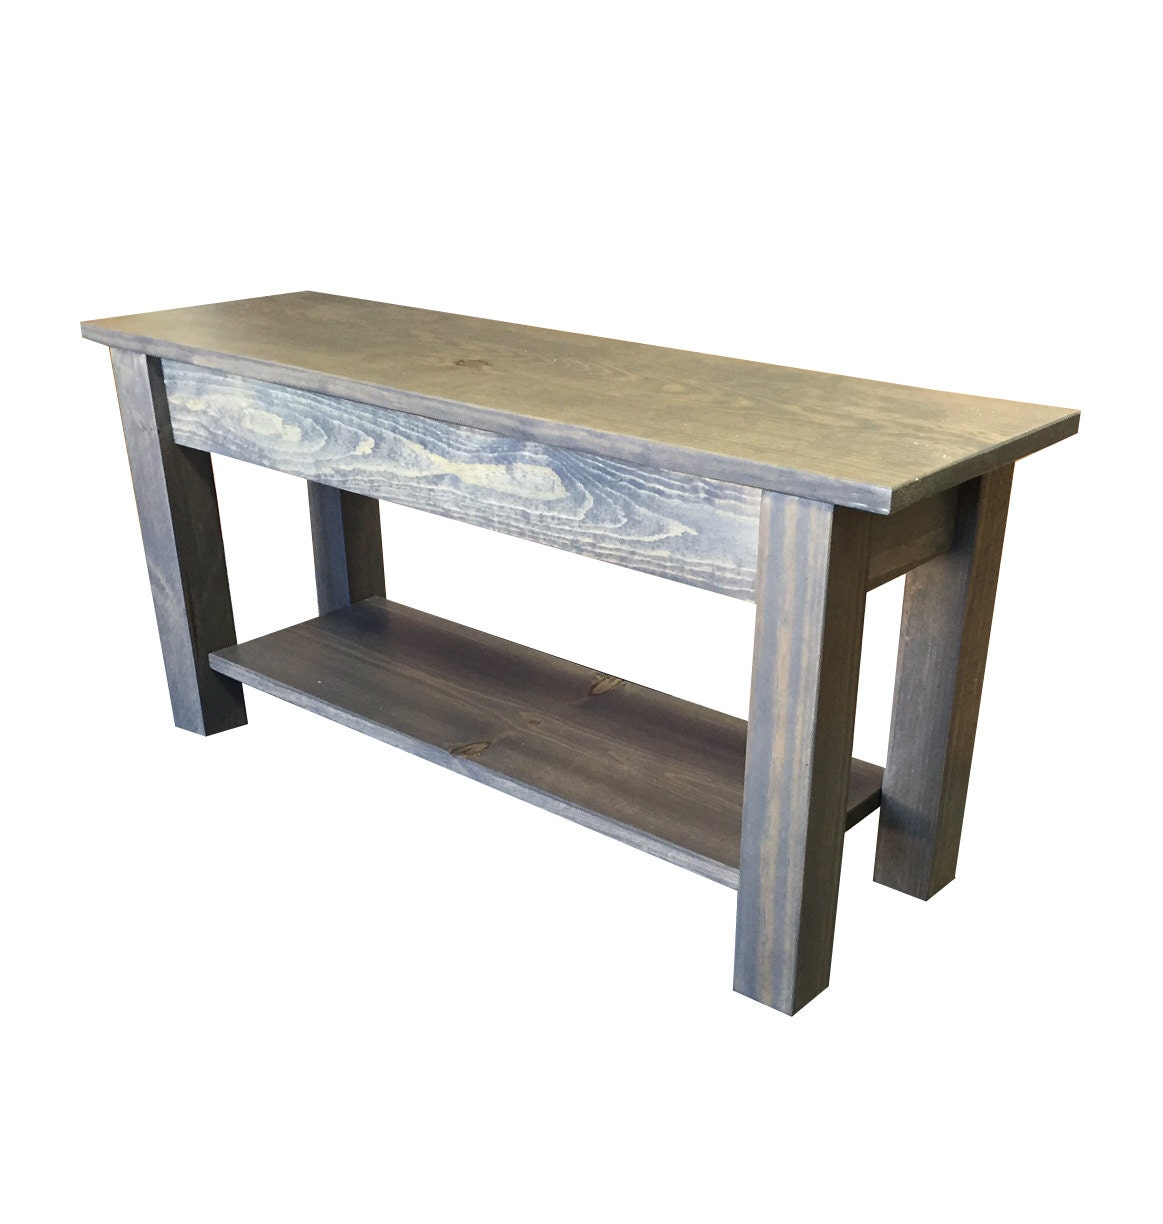 Cape Cod Storage Bench Shoe Rack Bench Foyer Bench